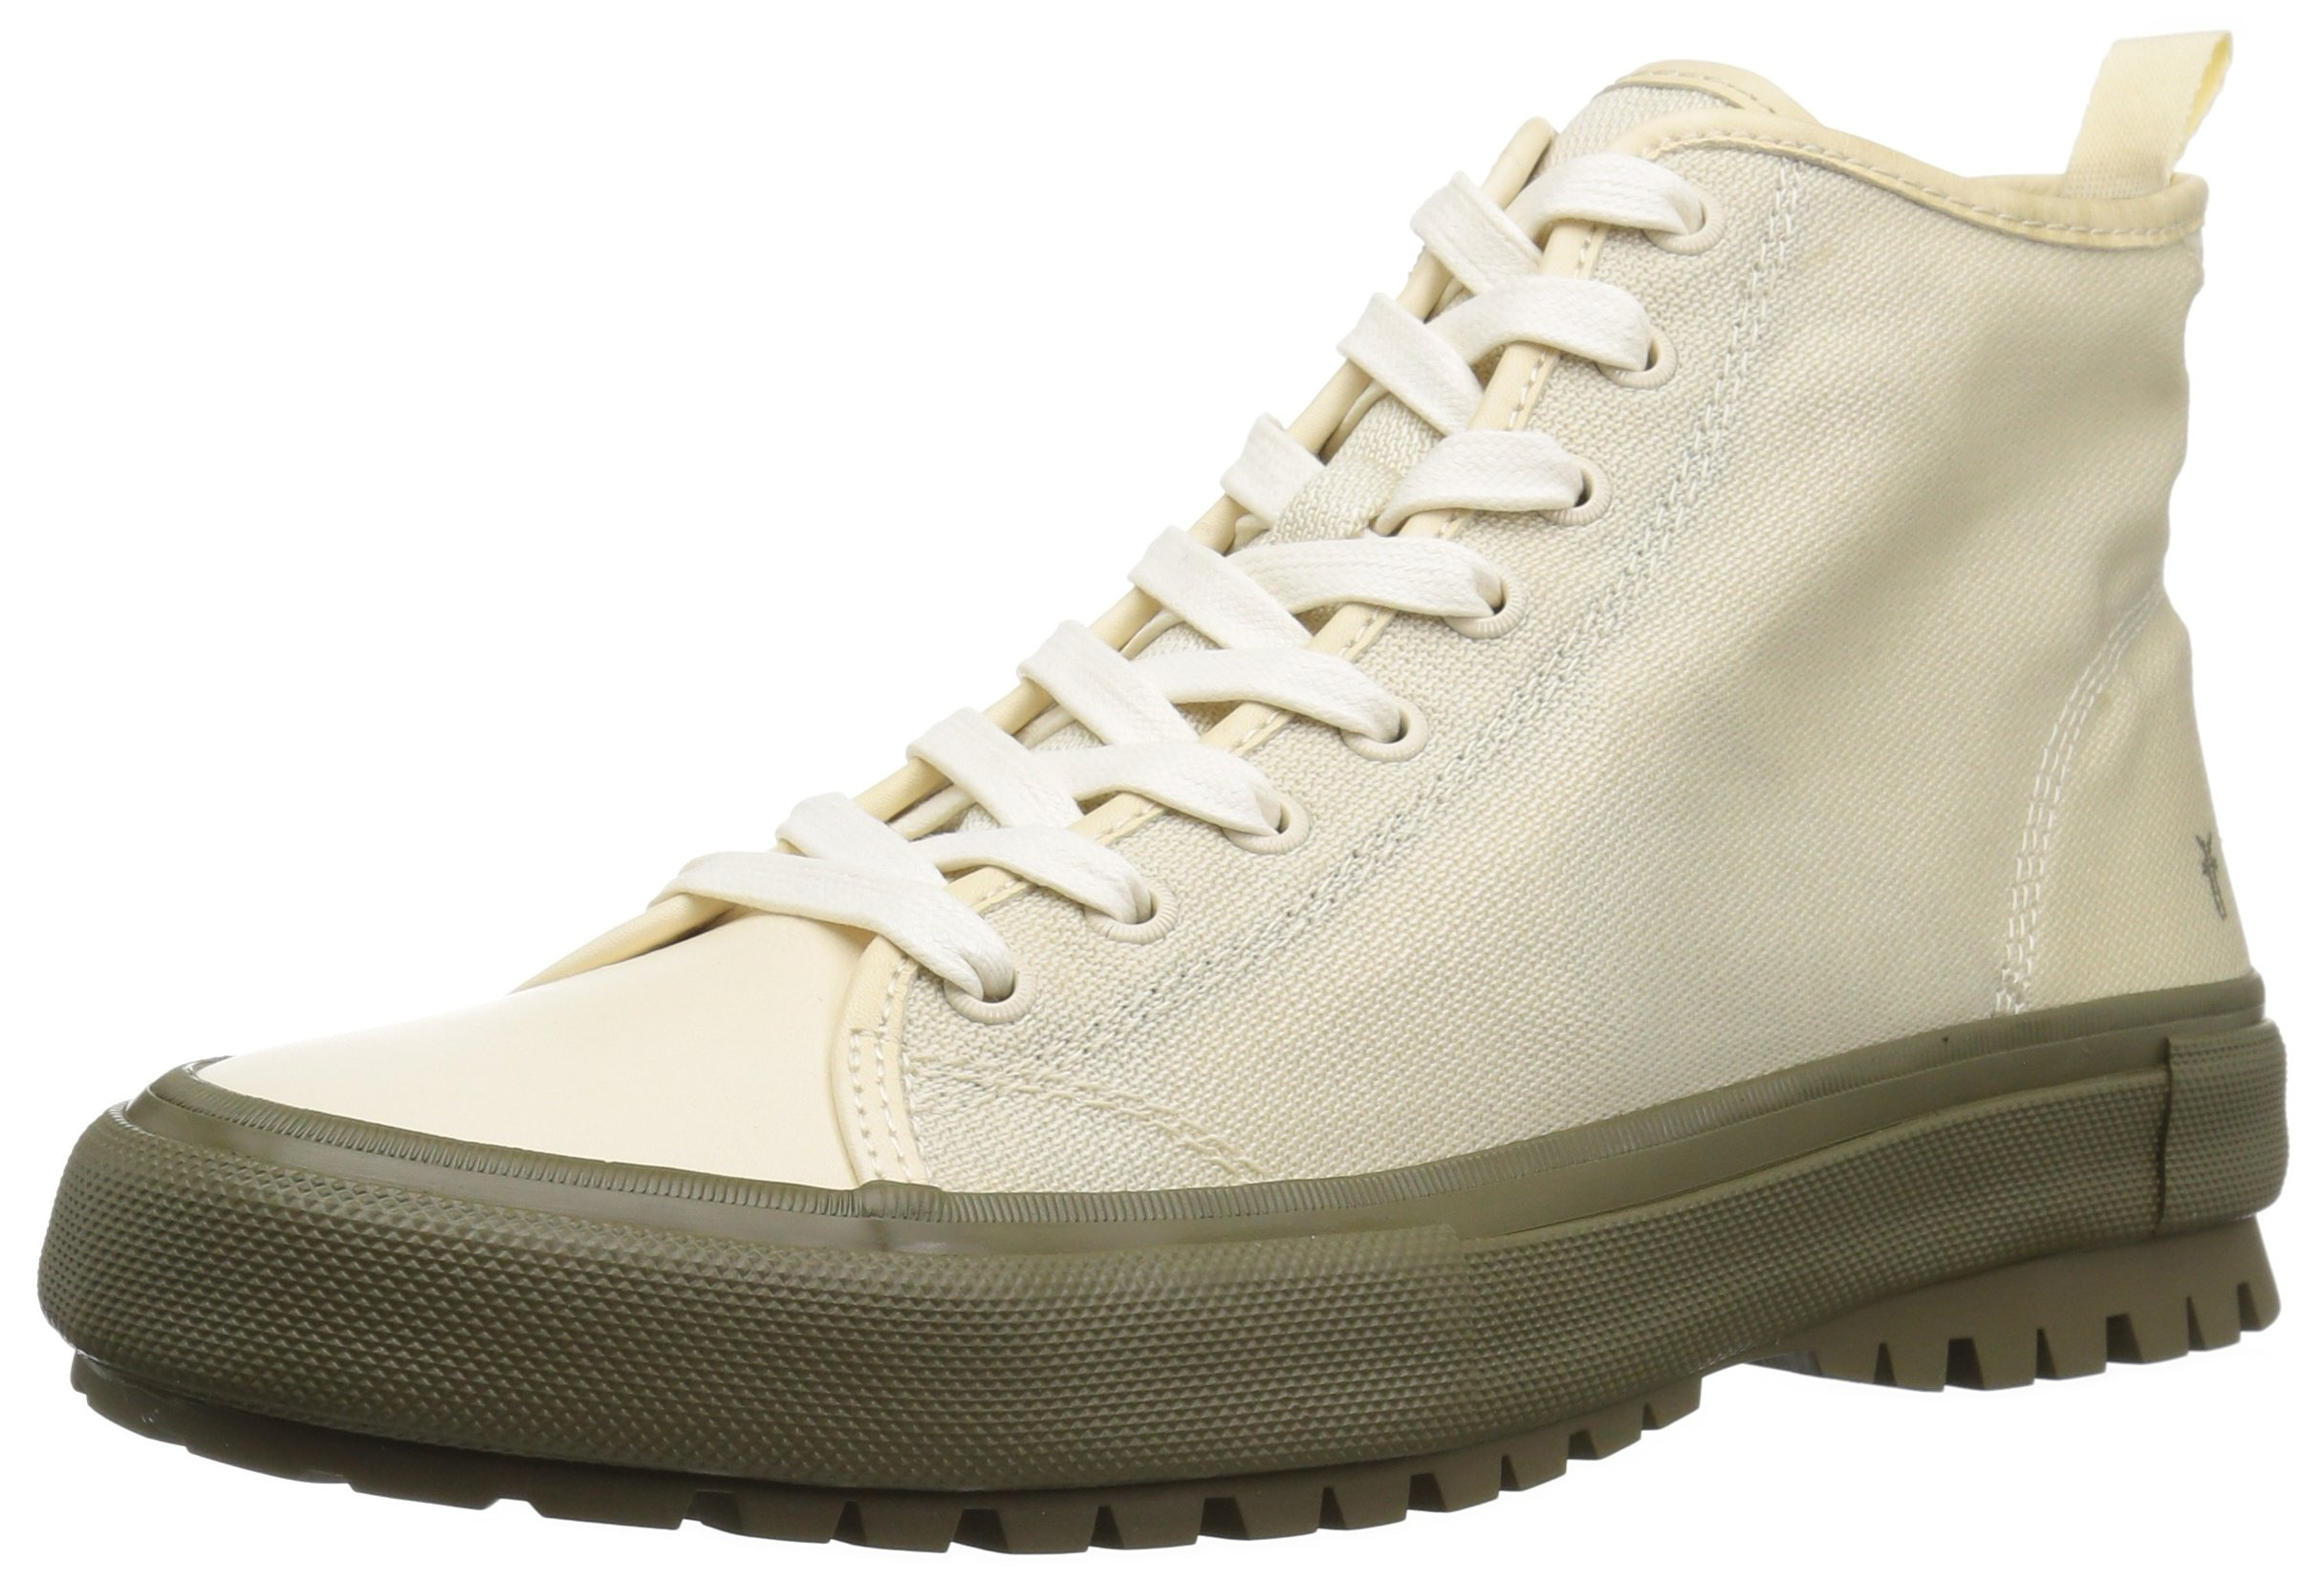 FRYE Men's Ryan Lug Midlace Rock Climbing Shoe, Off White, 10 Medium US by FRYE